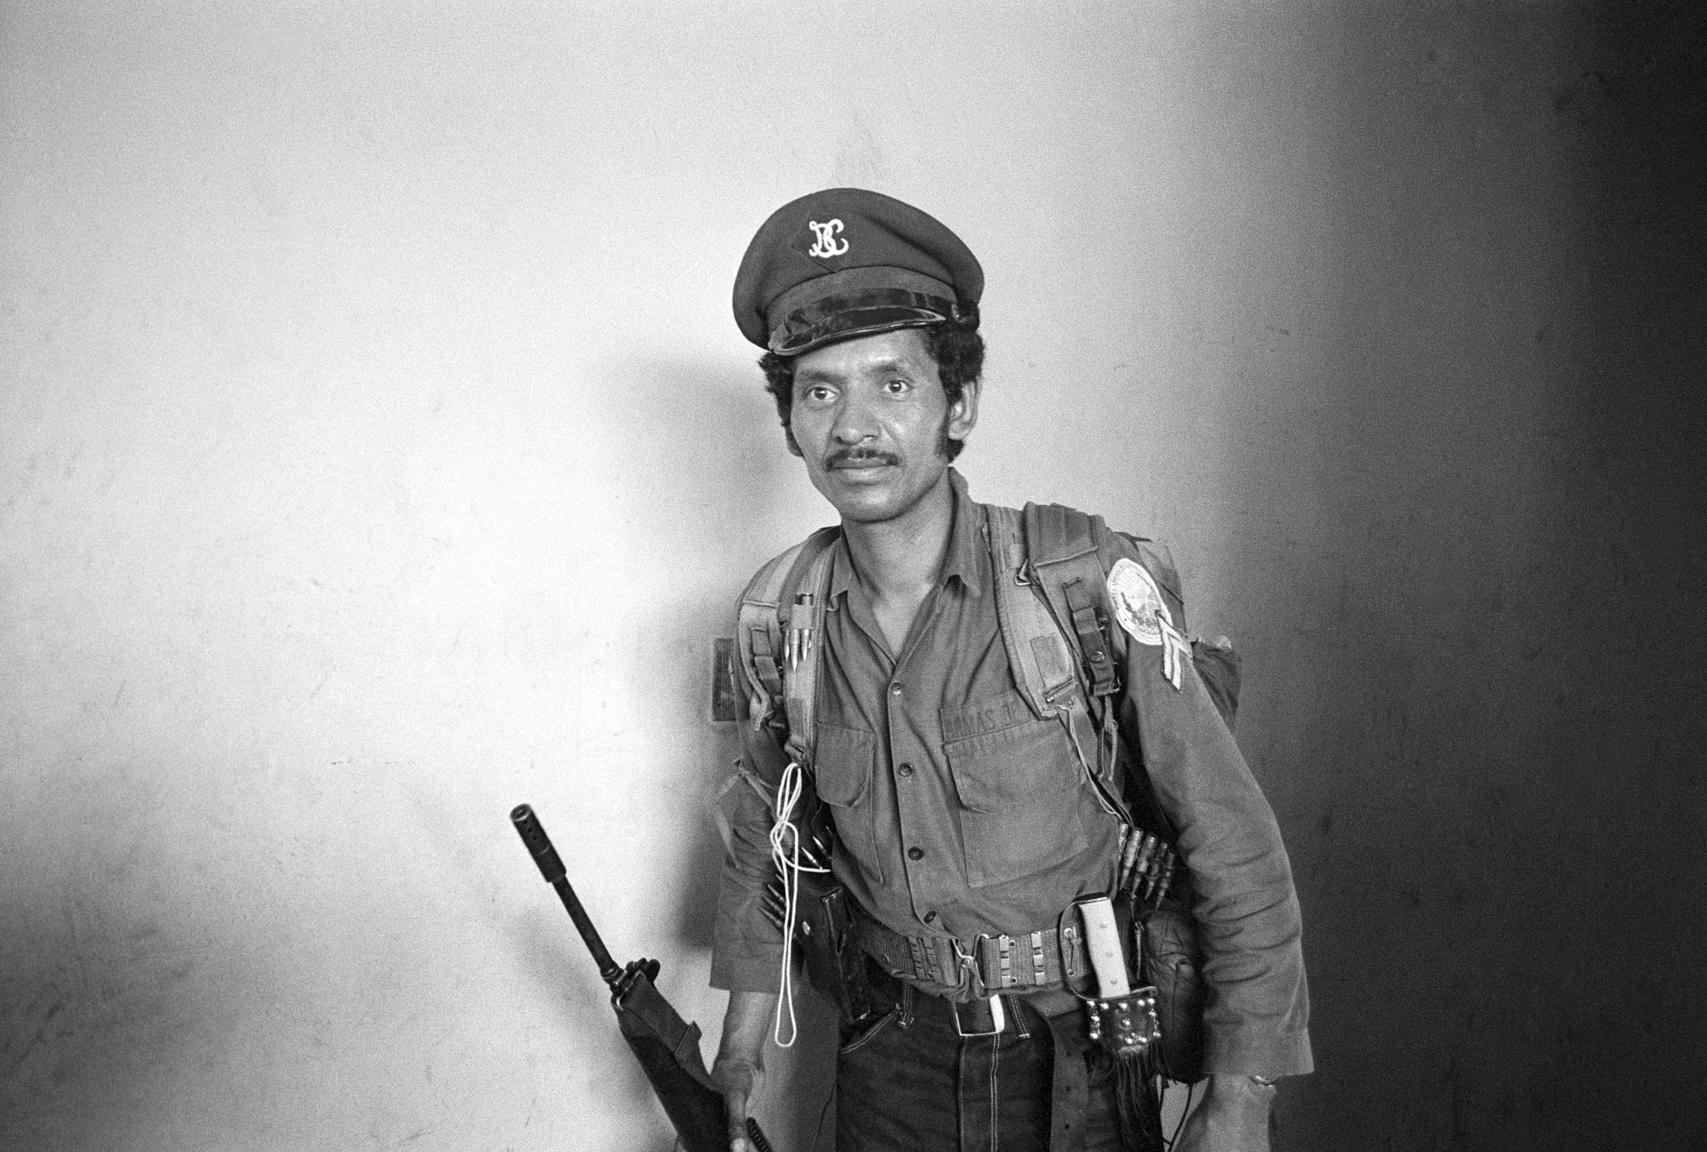 A member of the Salvadoran guerrilla group Ejército Revolucionario del Pueblo, or ERP, moves through the ransacked office of the national telephone company February 1, 1983 in Jucuapa, El Salvador. The guerrilla's uniform is a mix of captured clothing of the Salvadoran government's security forces.